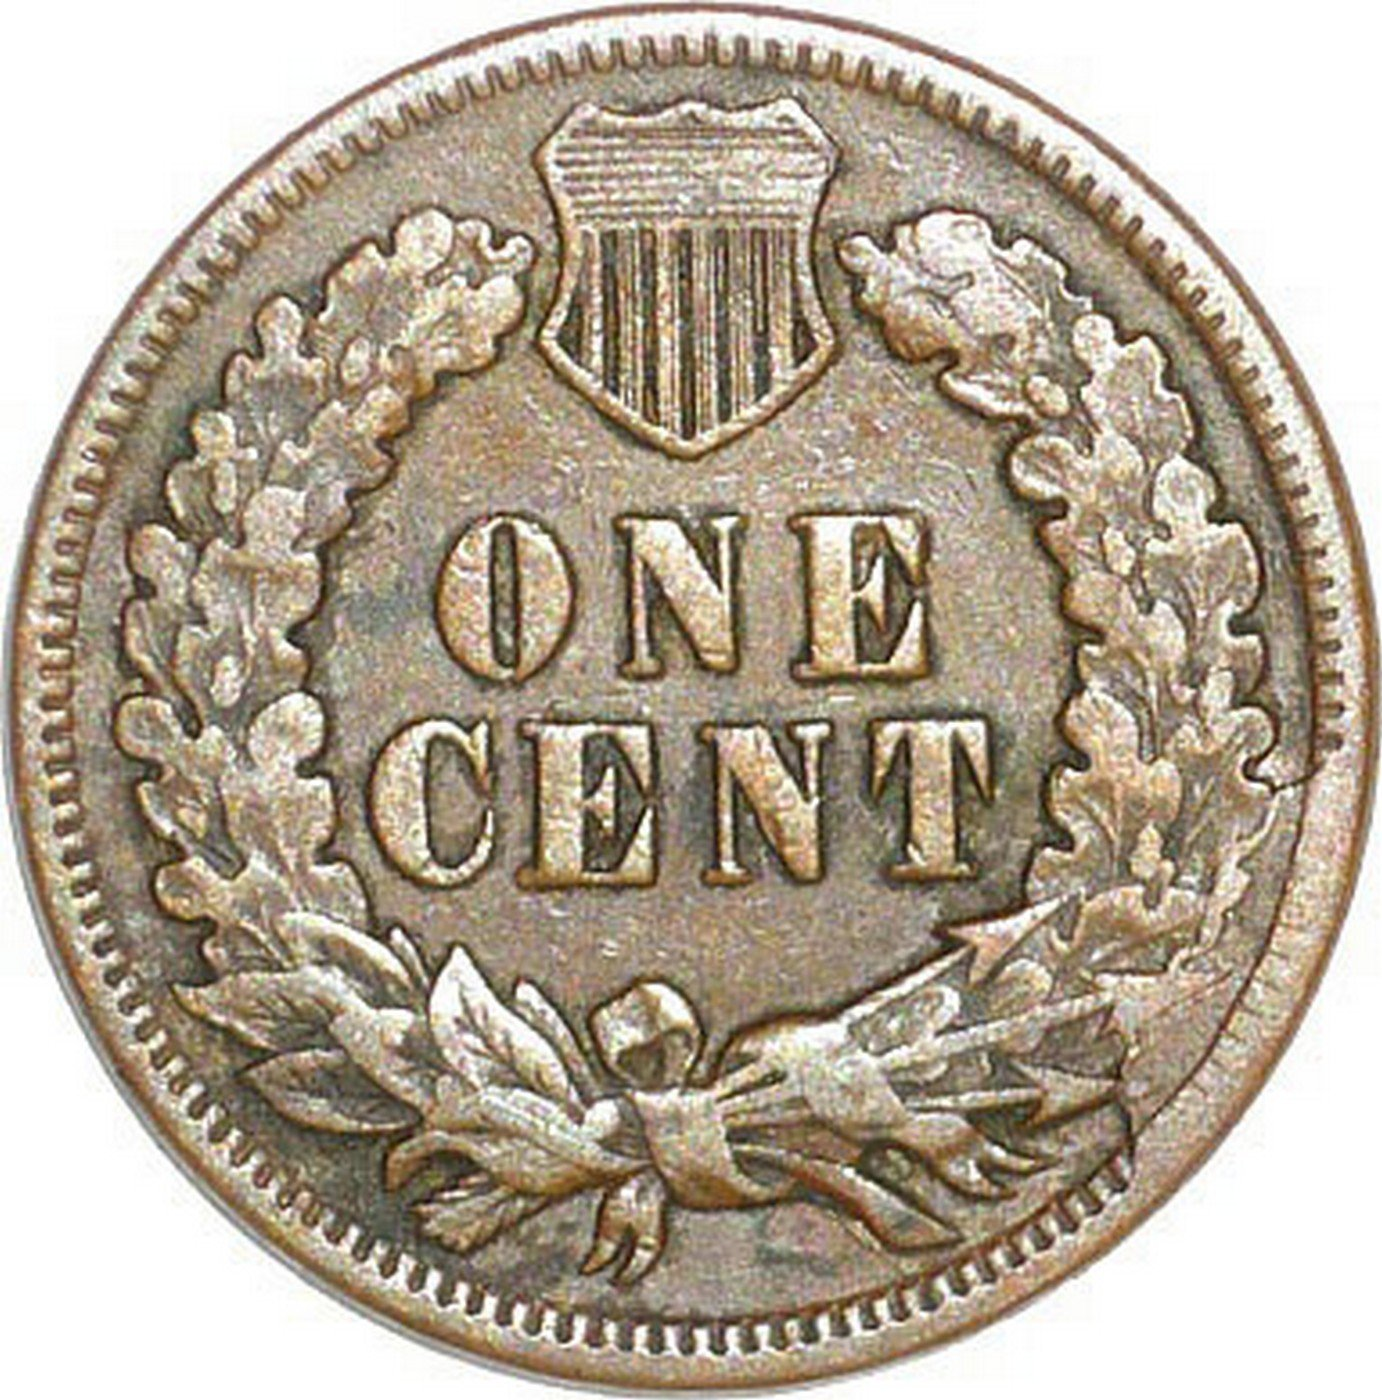 1905 CUD-004 - Indian Head Cent - Photo by David Poliquin